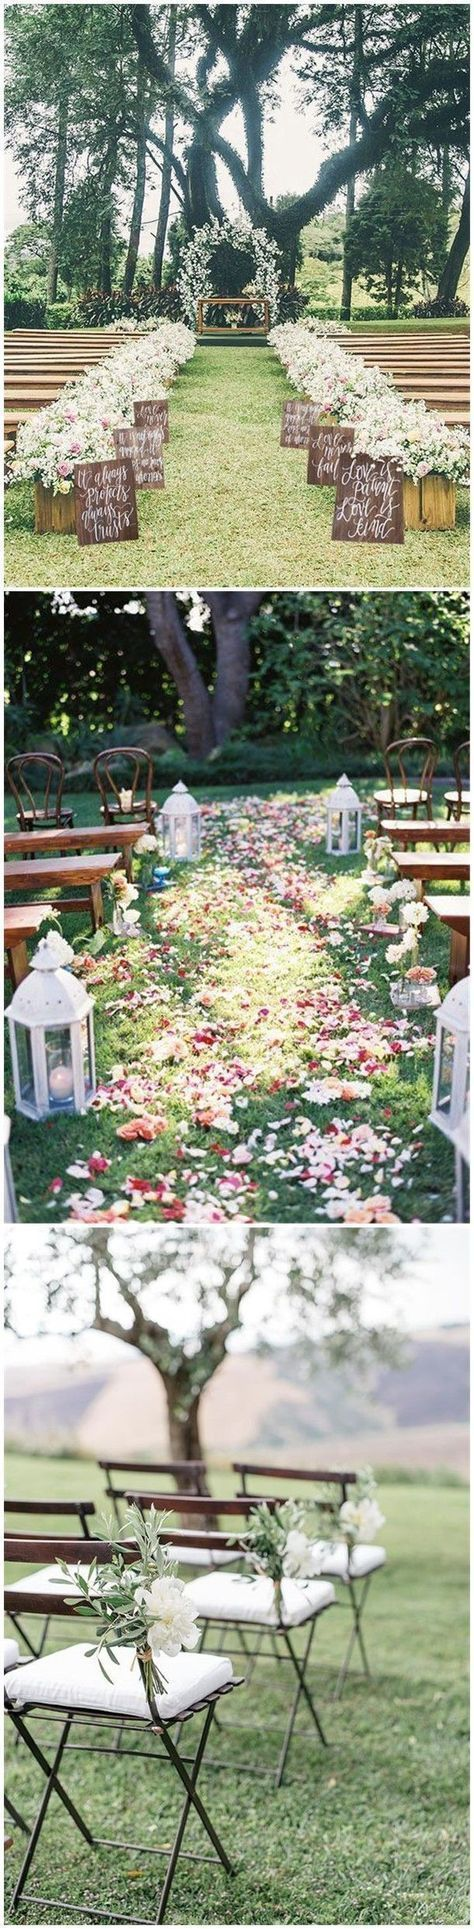 Country Weddings » 25 Rustic Outdoor Wedding Ceremony Decorations Ideas » ❤️ See more: http://www.weddinginclude.com/2017/06/rustic-outdoor-wedding-ceremony-decorations-ideas/ #weddingdecoration #rusticweddingdecorations